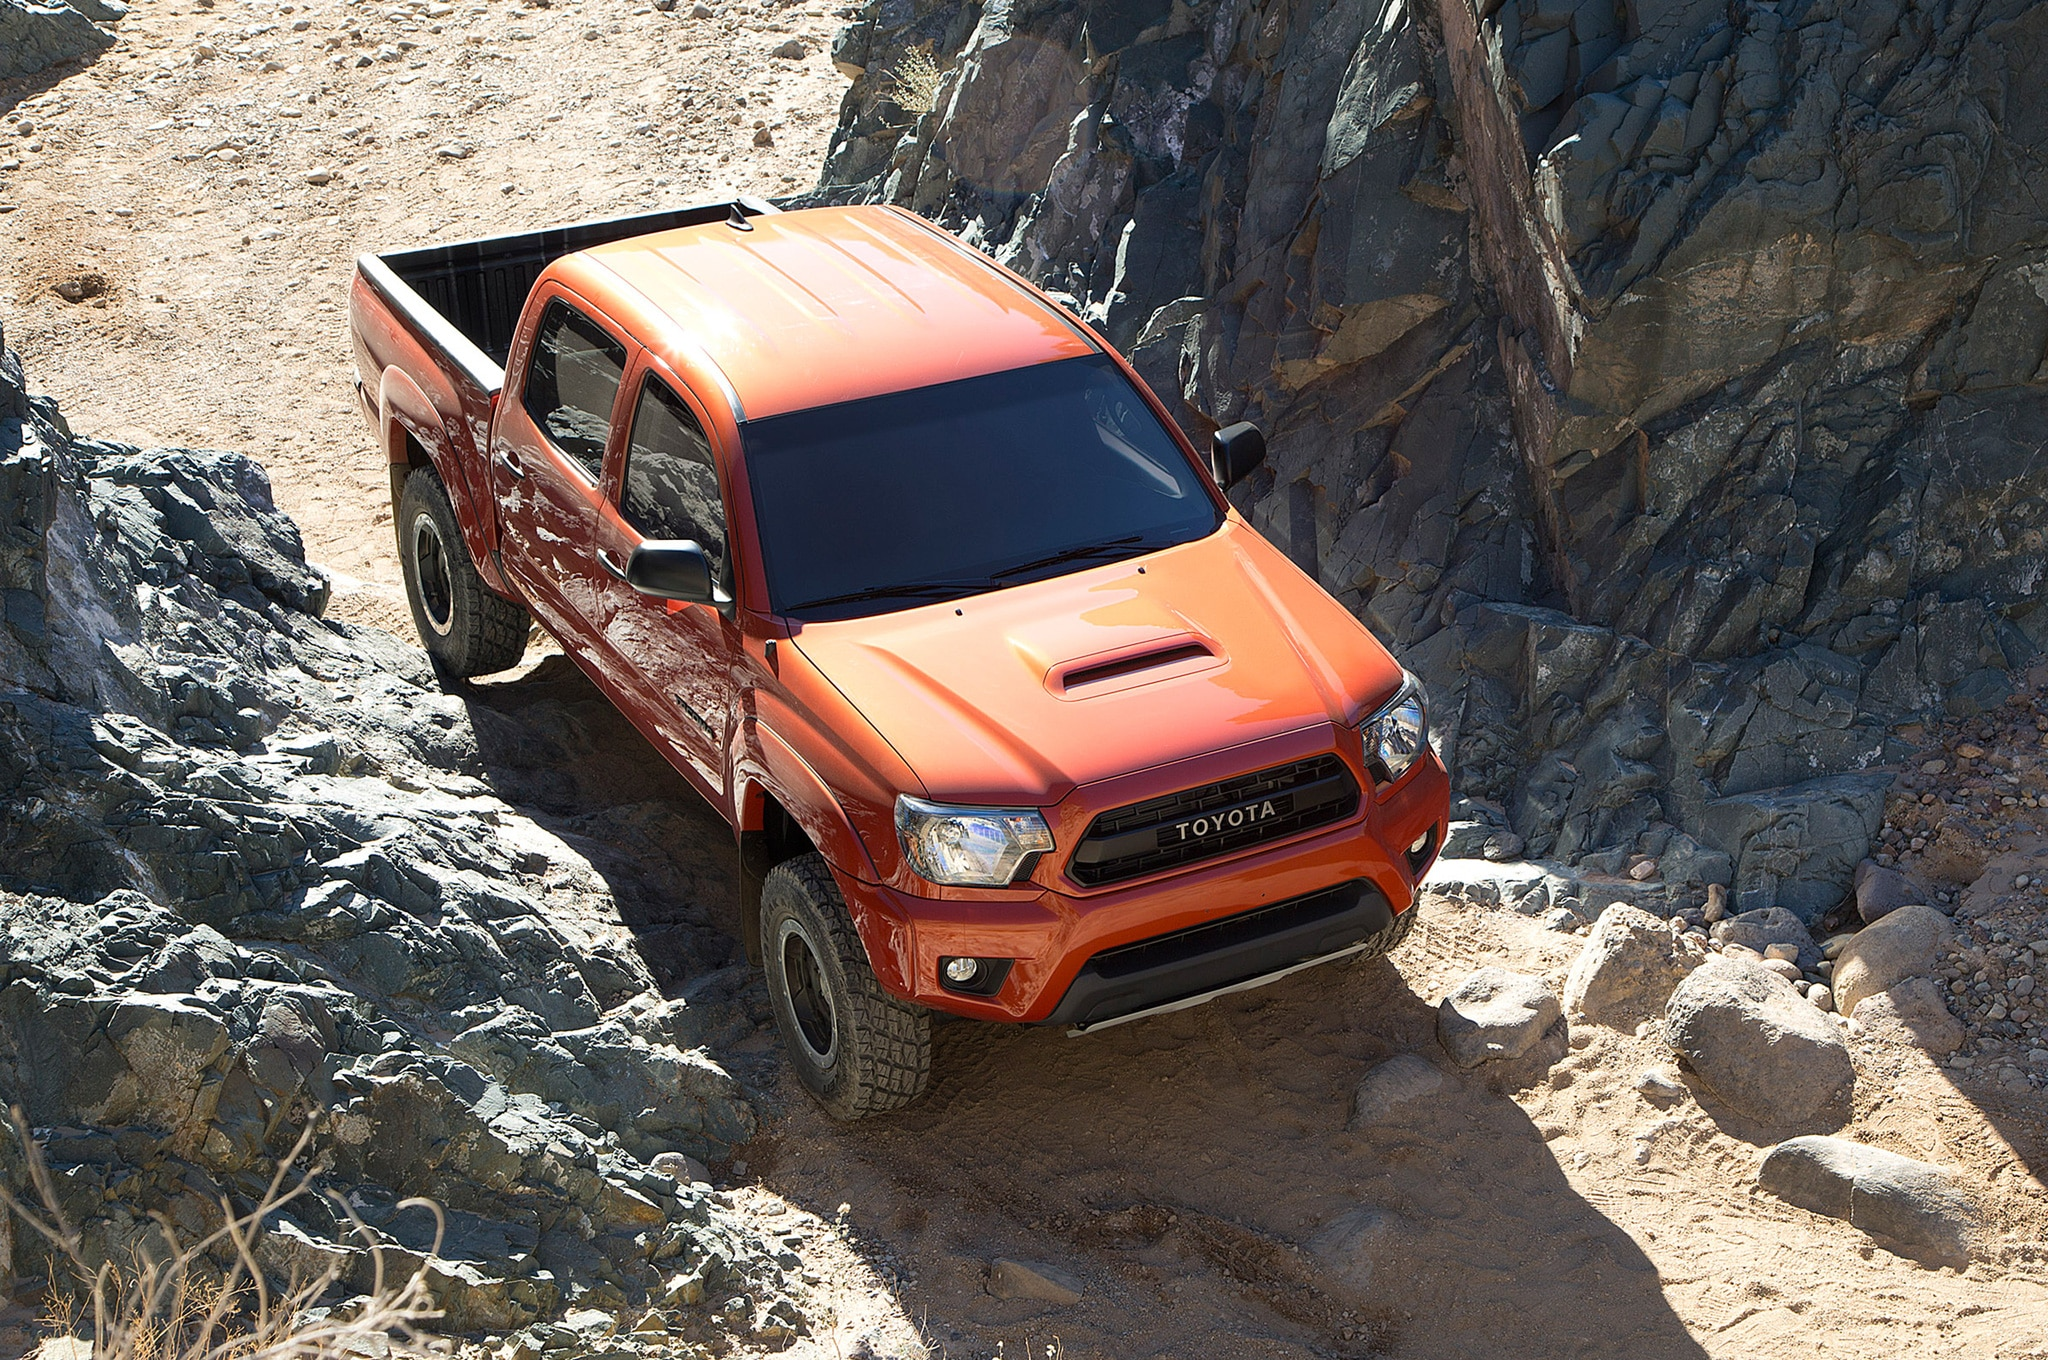 2015 Toyota Tacoma TRD Pro from above